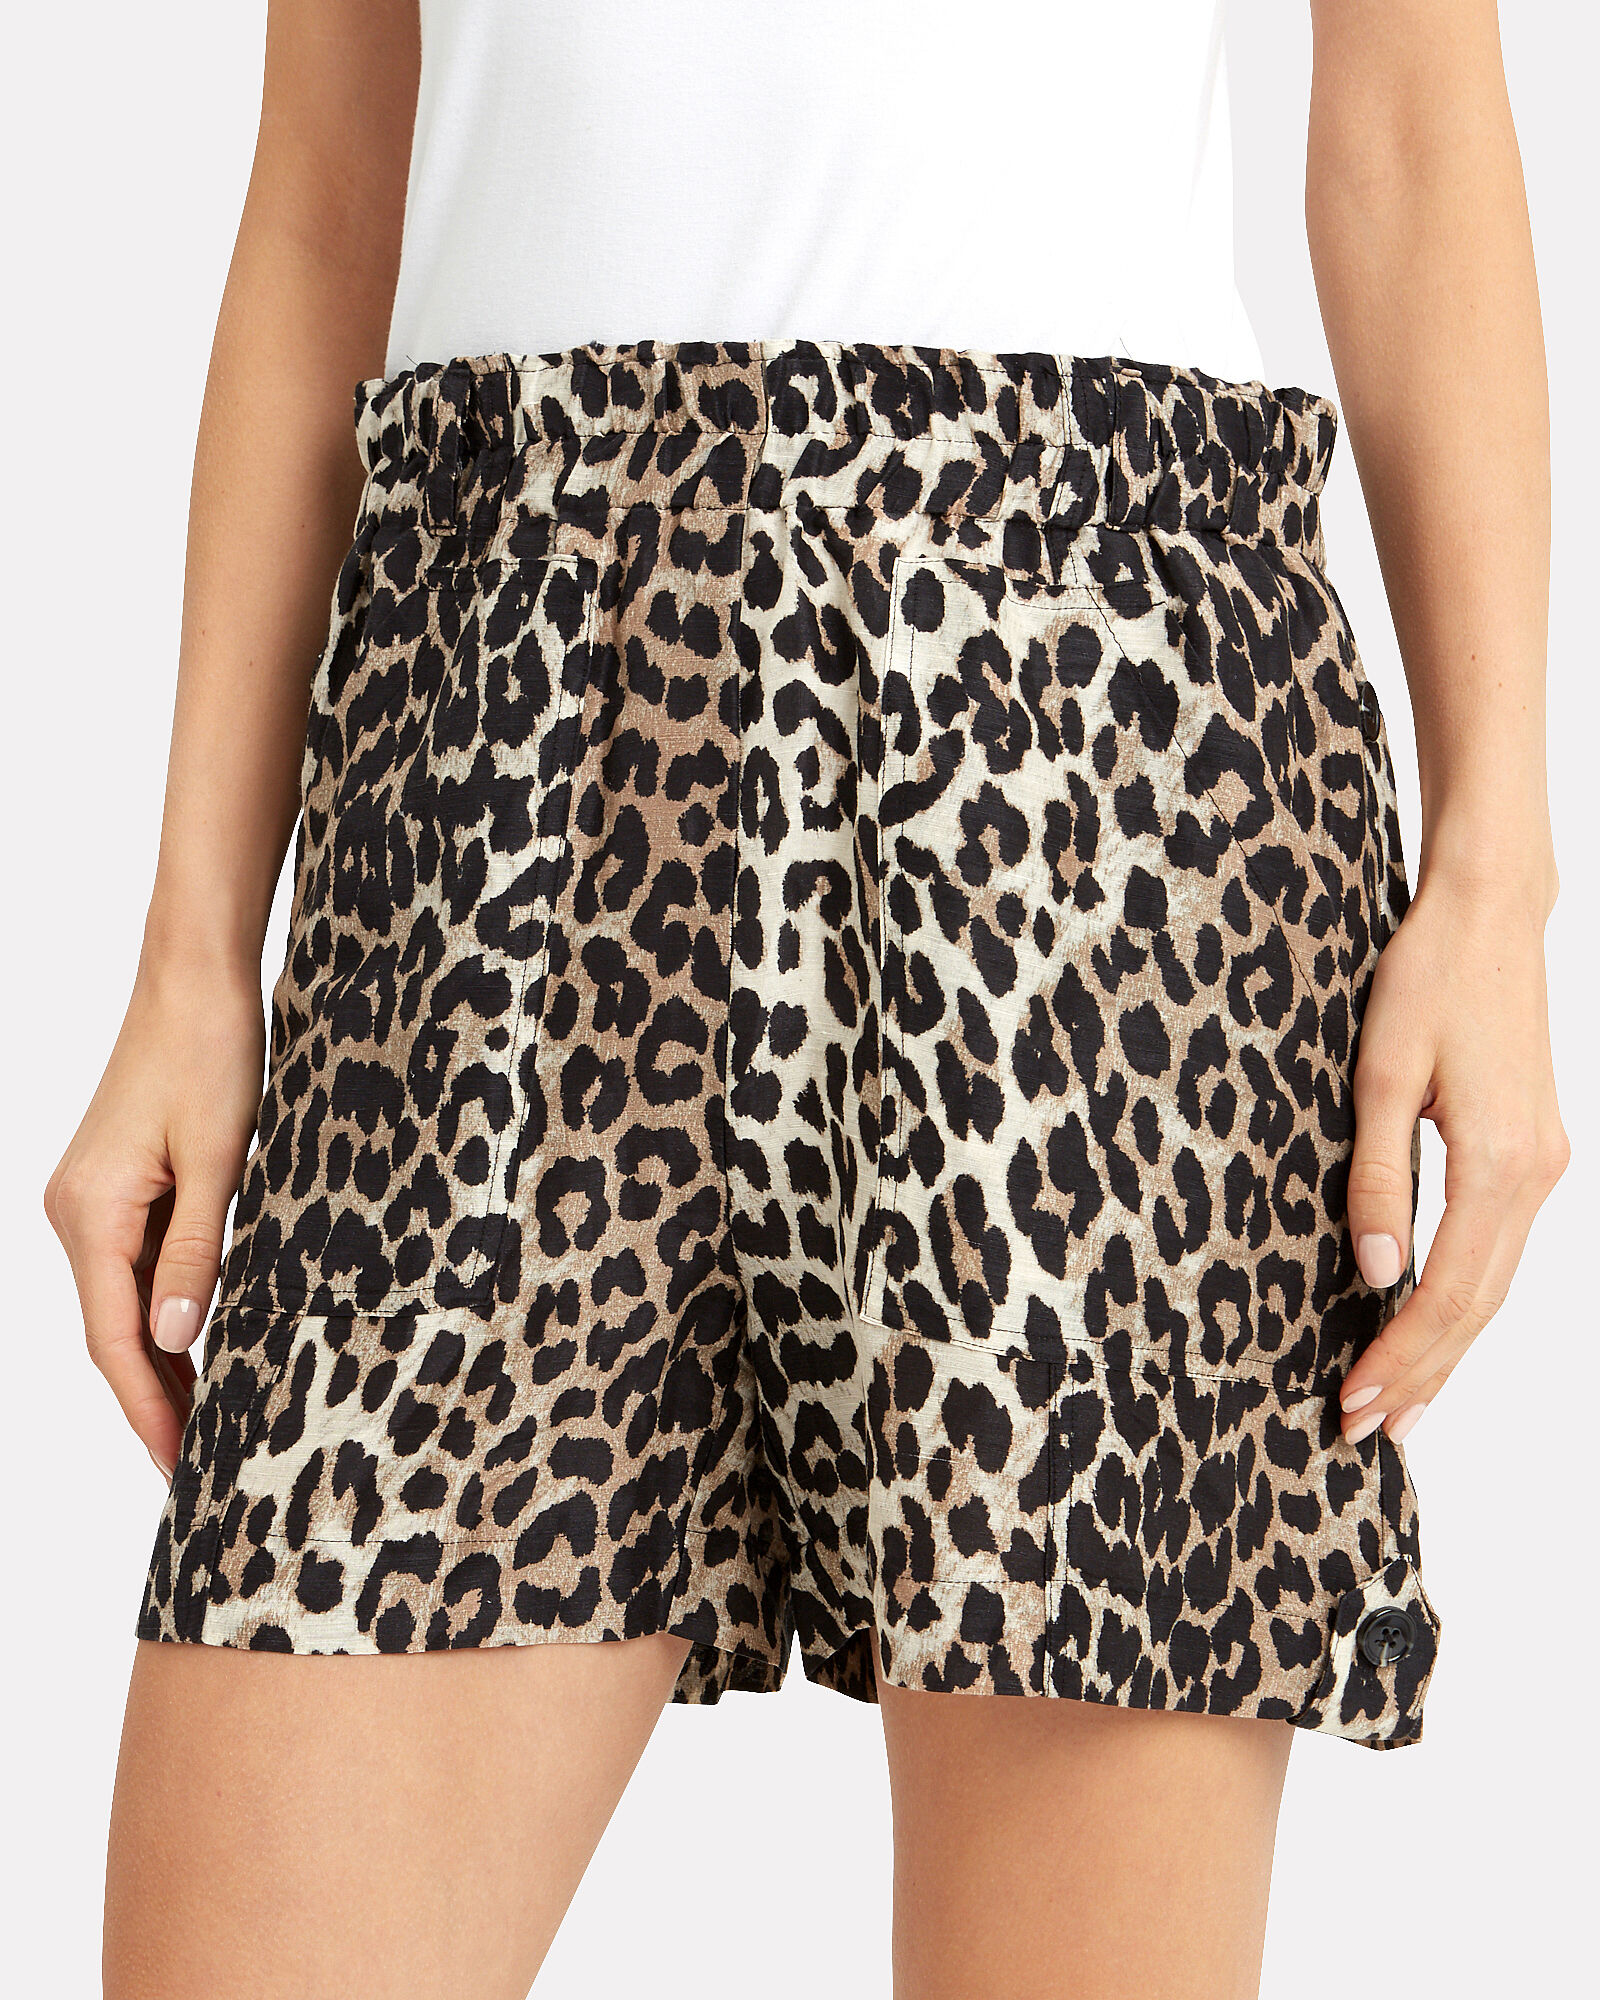 Linen Leopard Print Shorts, BROWN/BLACK, hi-res